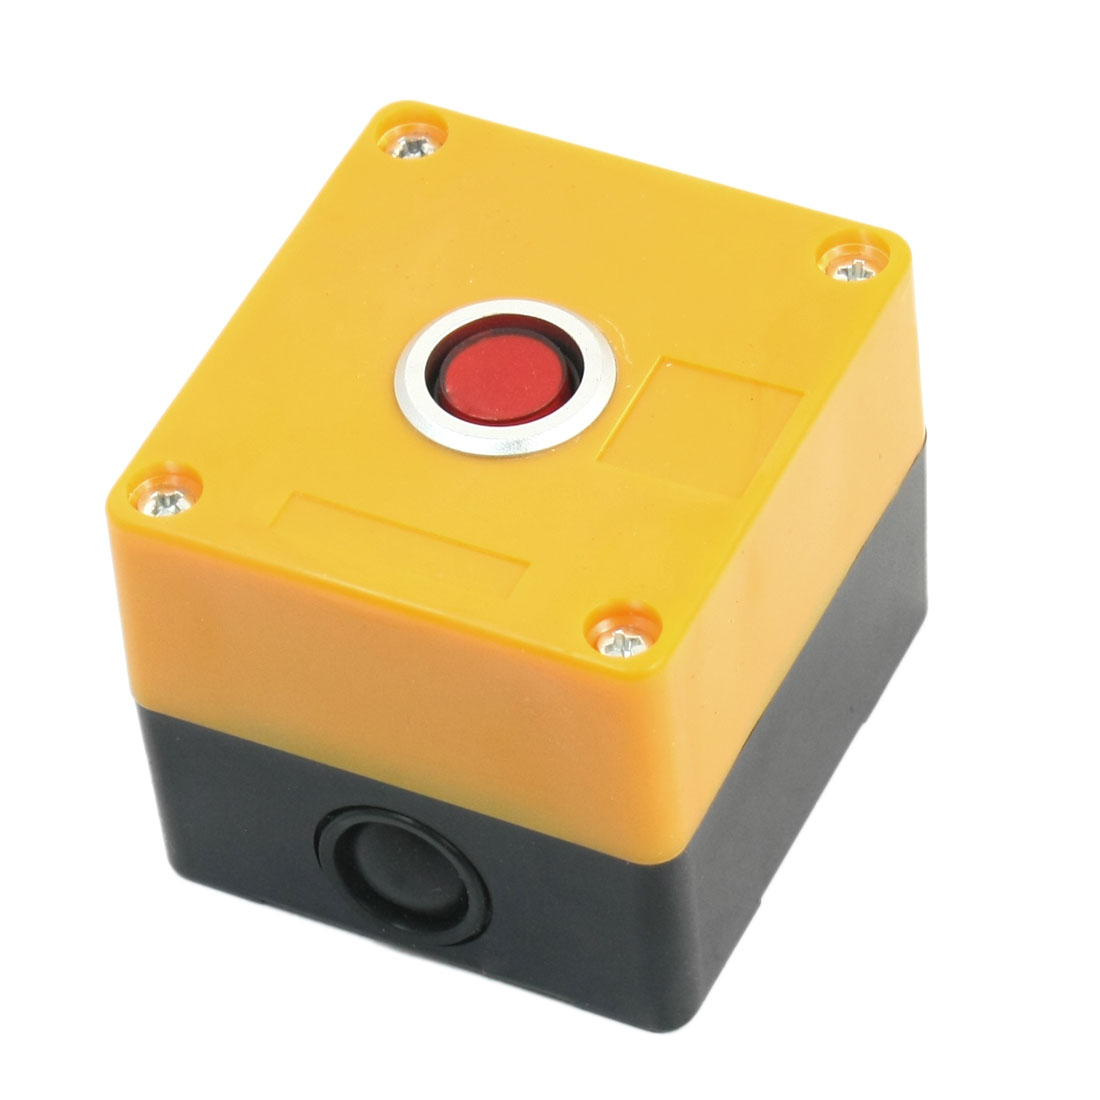 24V 15mm Dia Round Button 2 Terminals Rectangle Plastic Case Red Accident Signal Indicator Light Pilot Lamp Blub Box